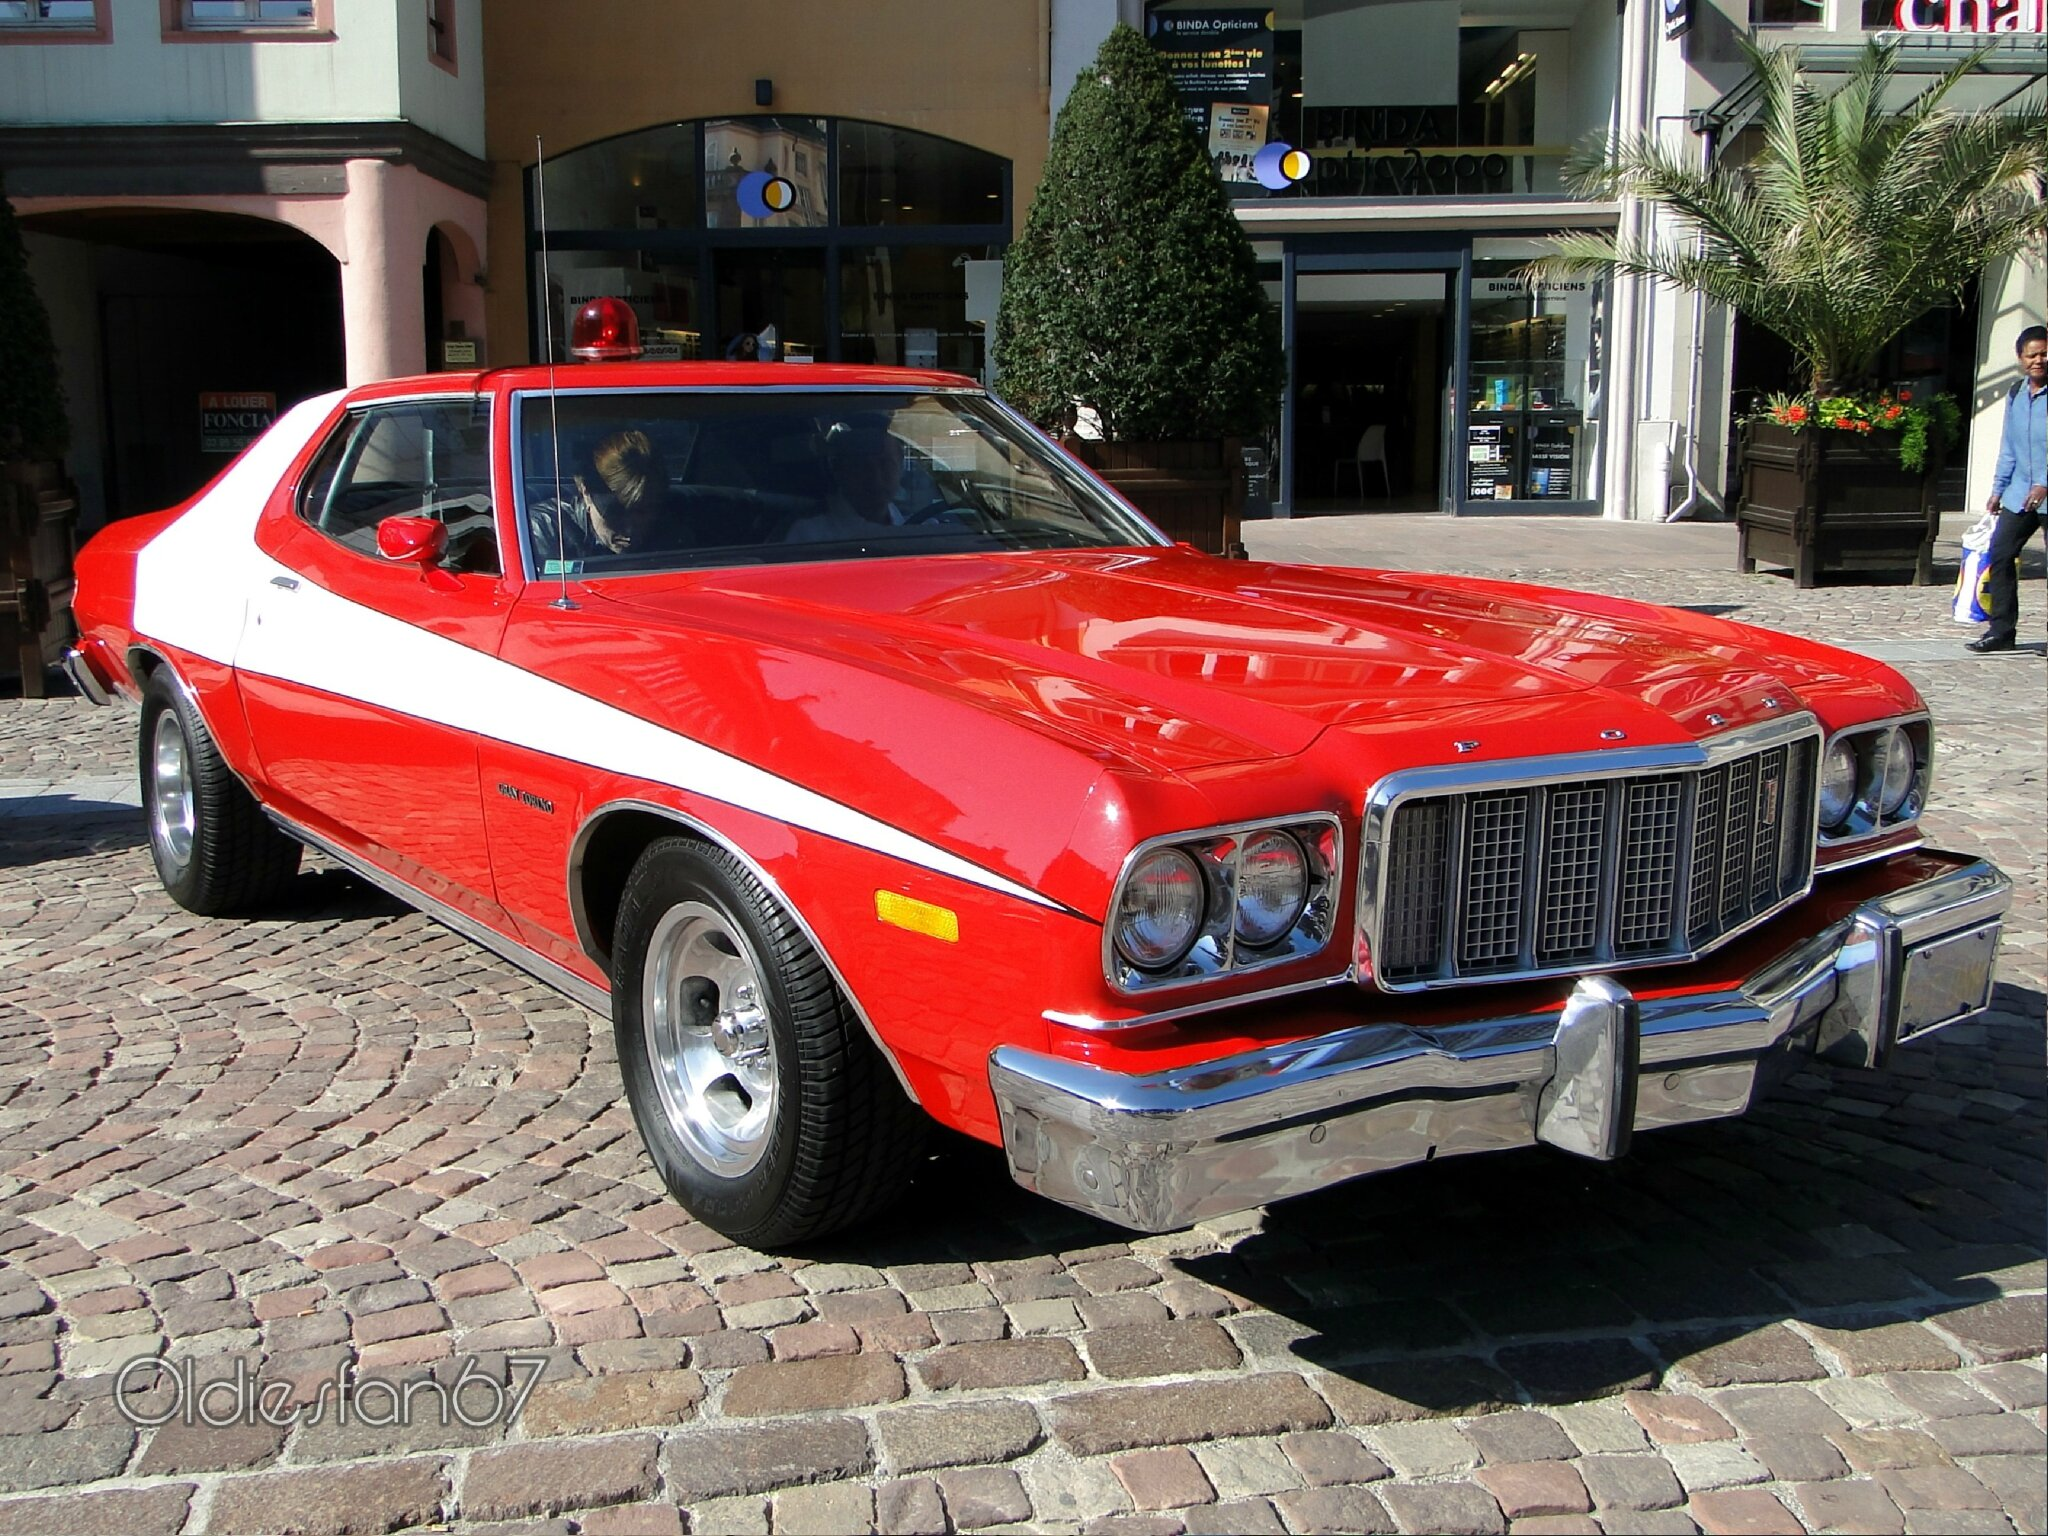 1974 ford gran torino de starsky et hutch dark cars wallpapers. Black Bedroom Furniture Sets. Home Design Ideas